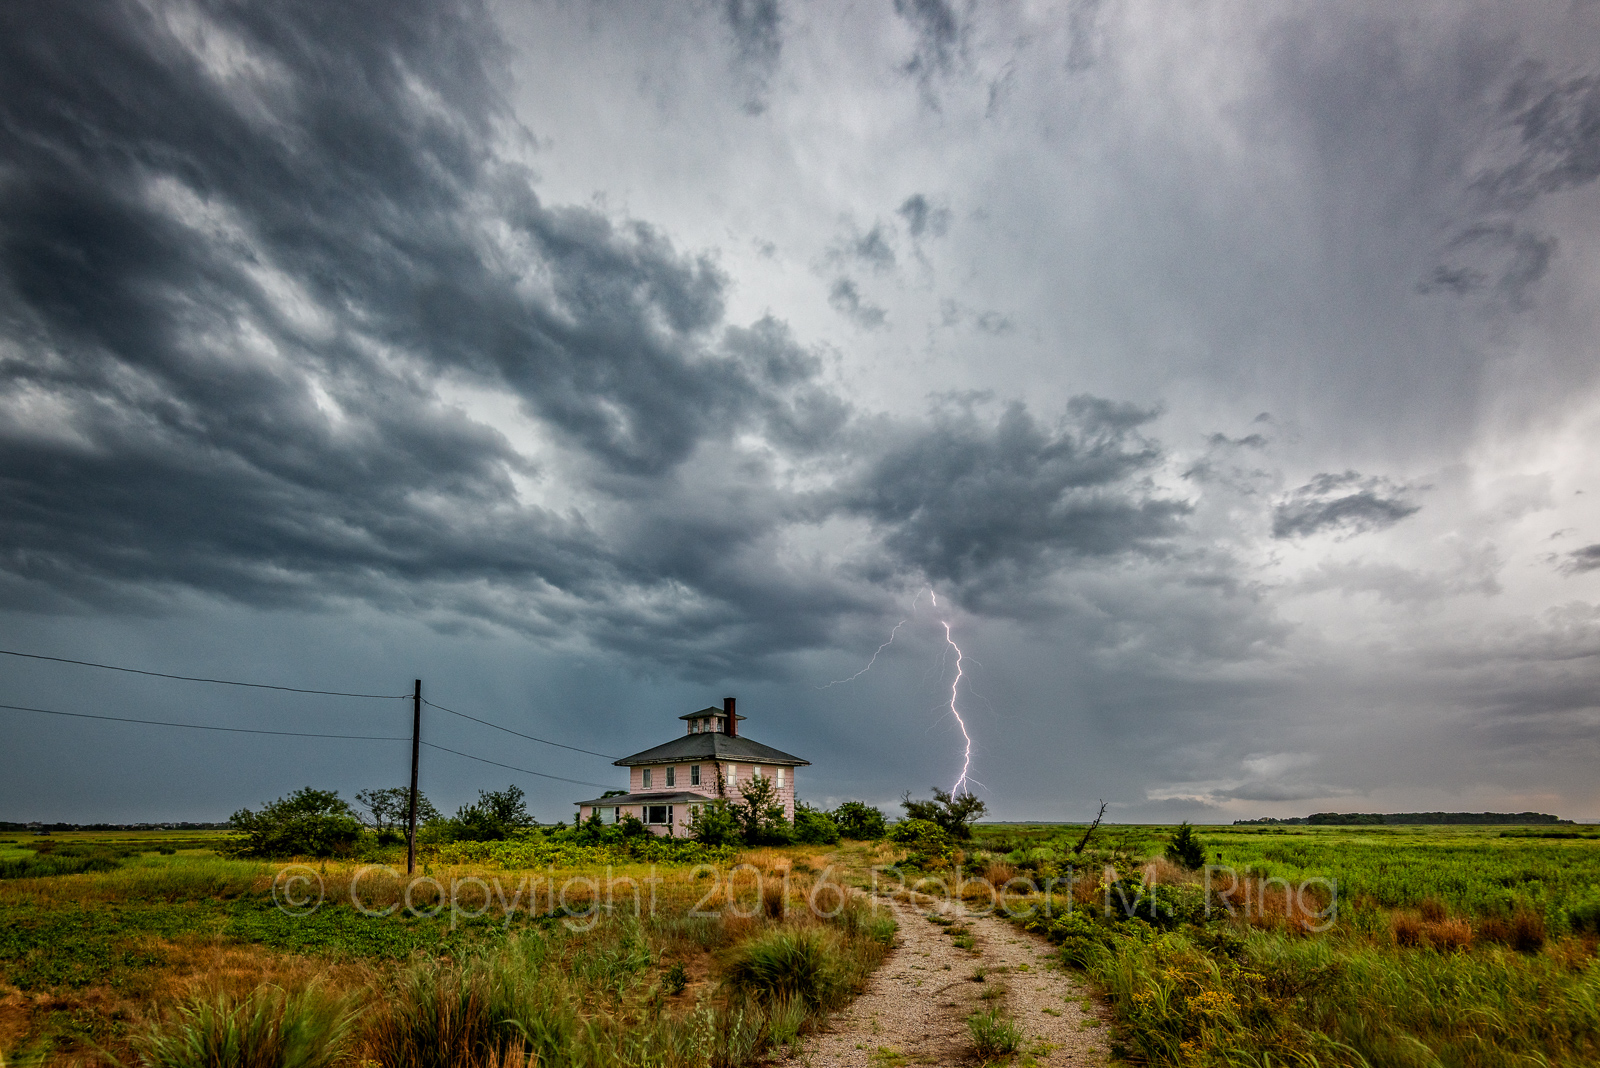 Storms, Pink House, Lightning, coast, clouds, sky, rain, New England, photo